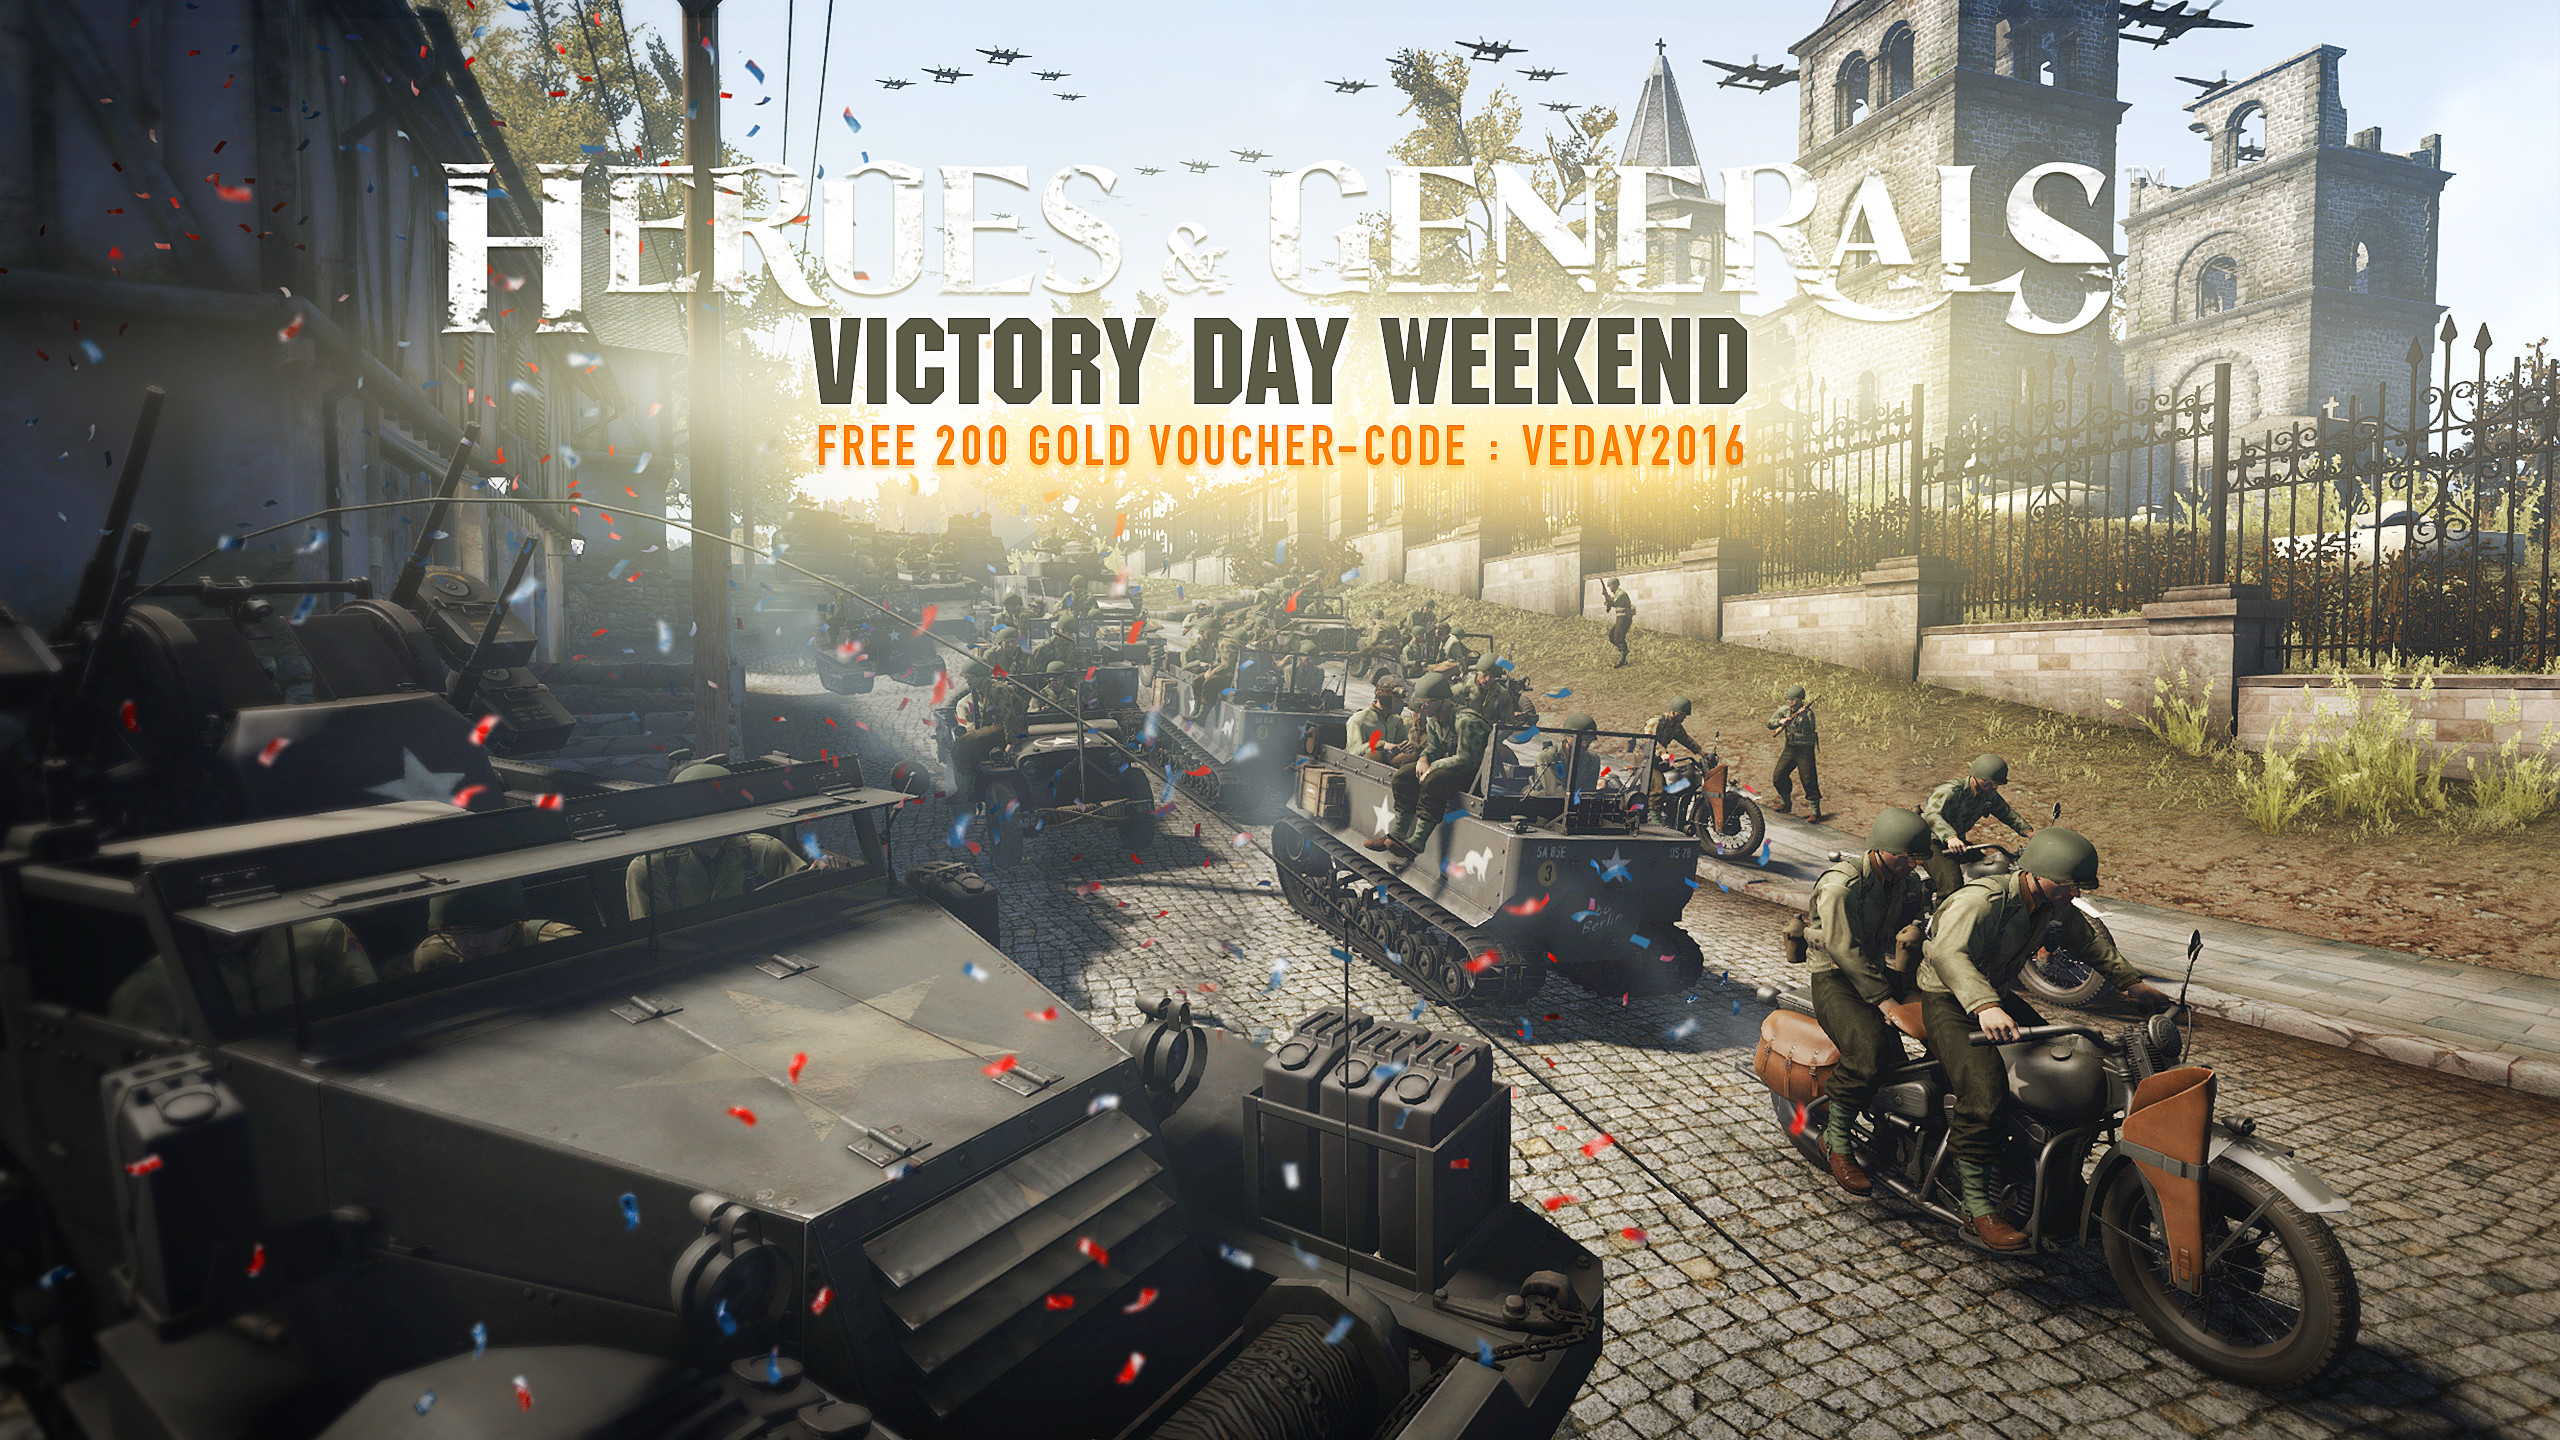 2560x1440 Free Gold to celebrate Victory Day Weekend